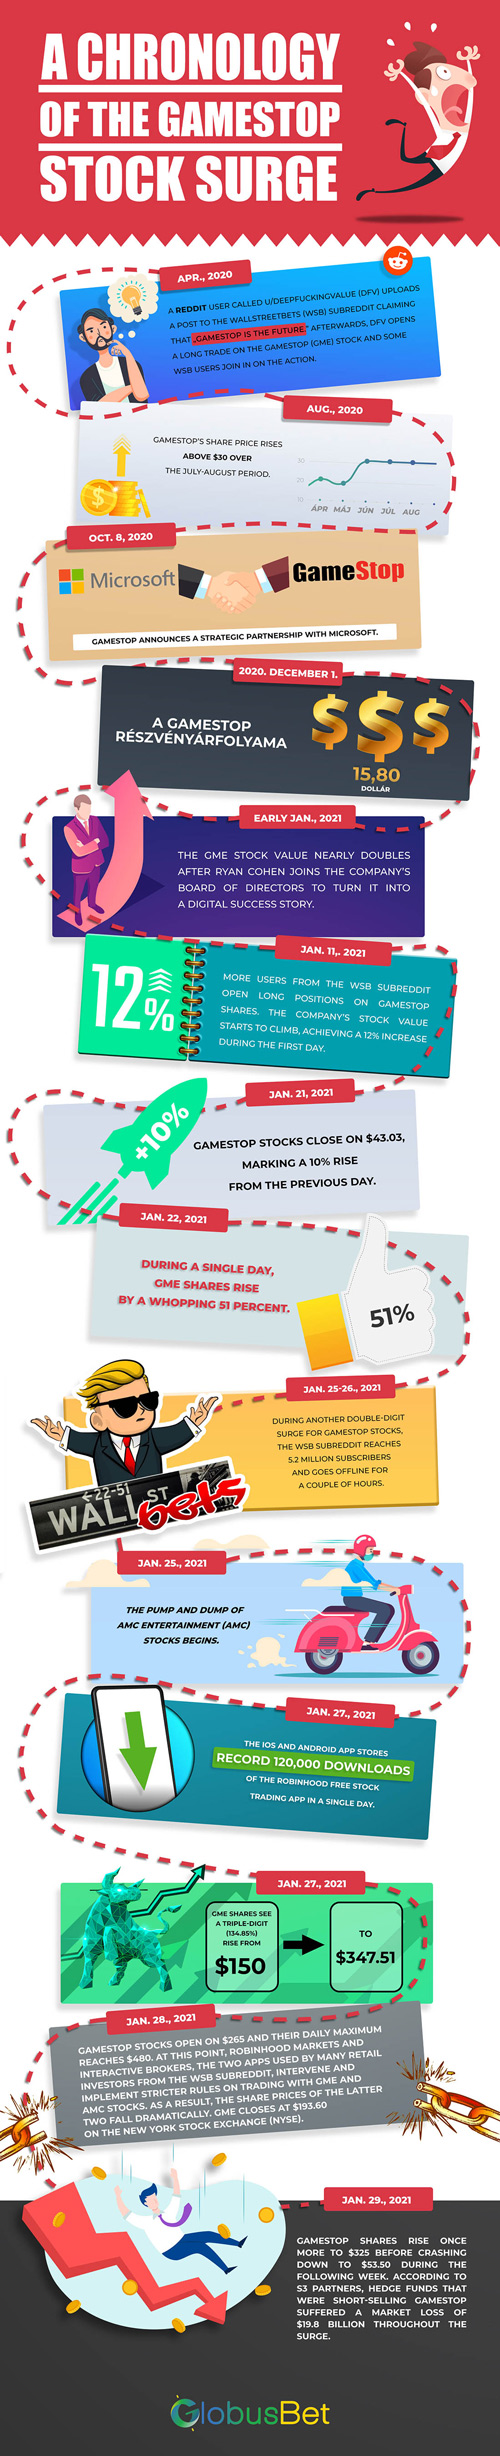 900 Infographics I Like Ideas In 2021 Infographic Infographic Marketing Social Media Infographic